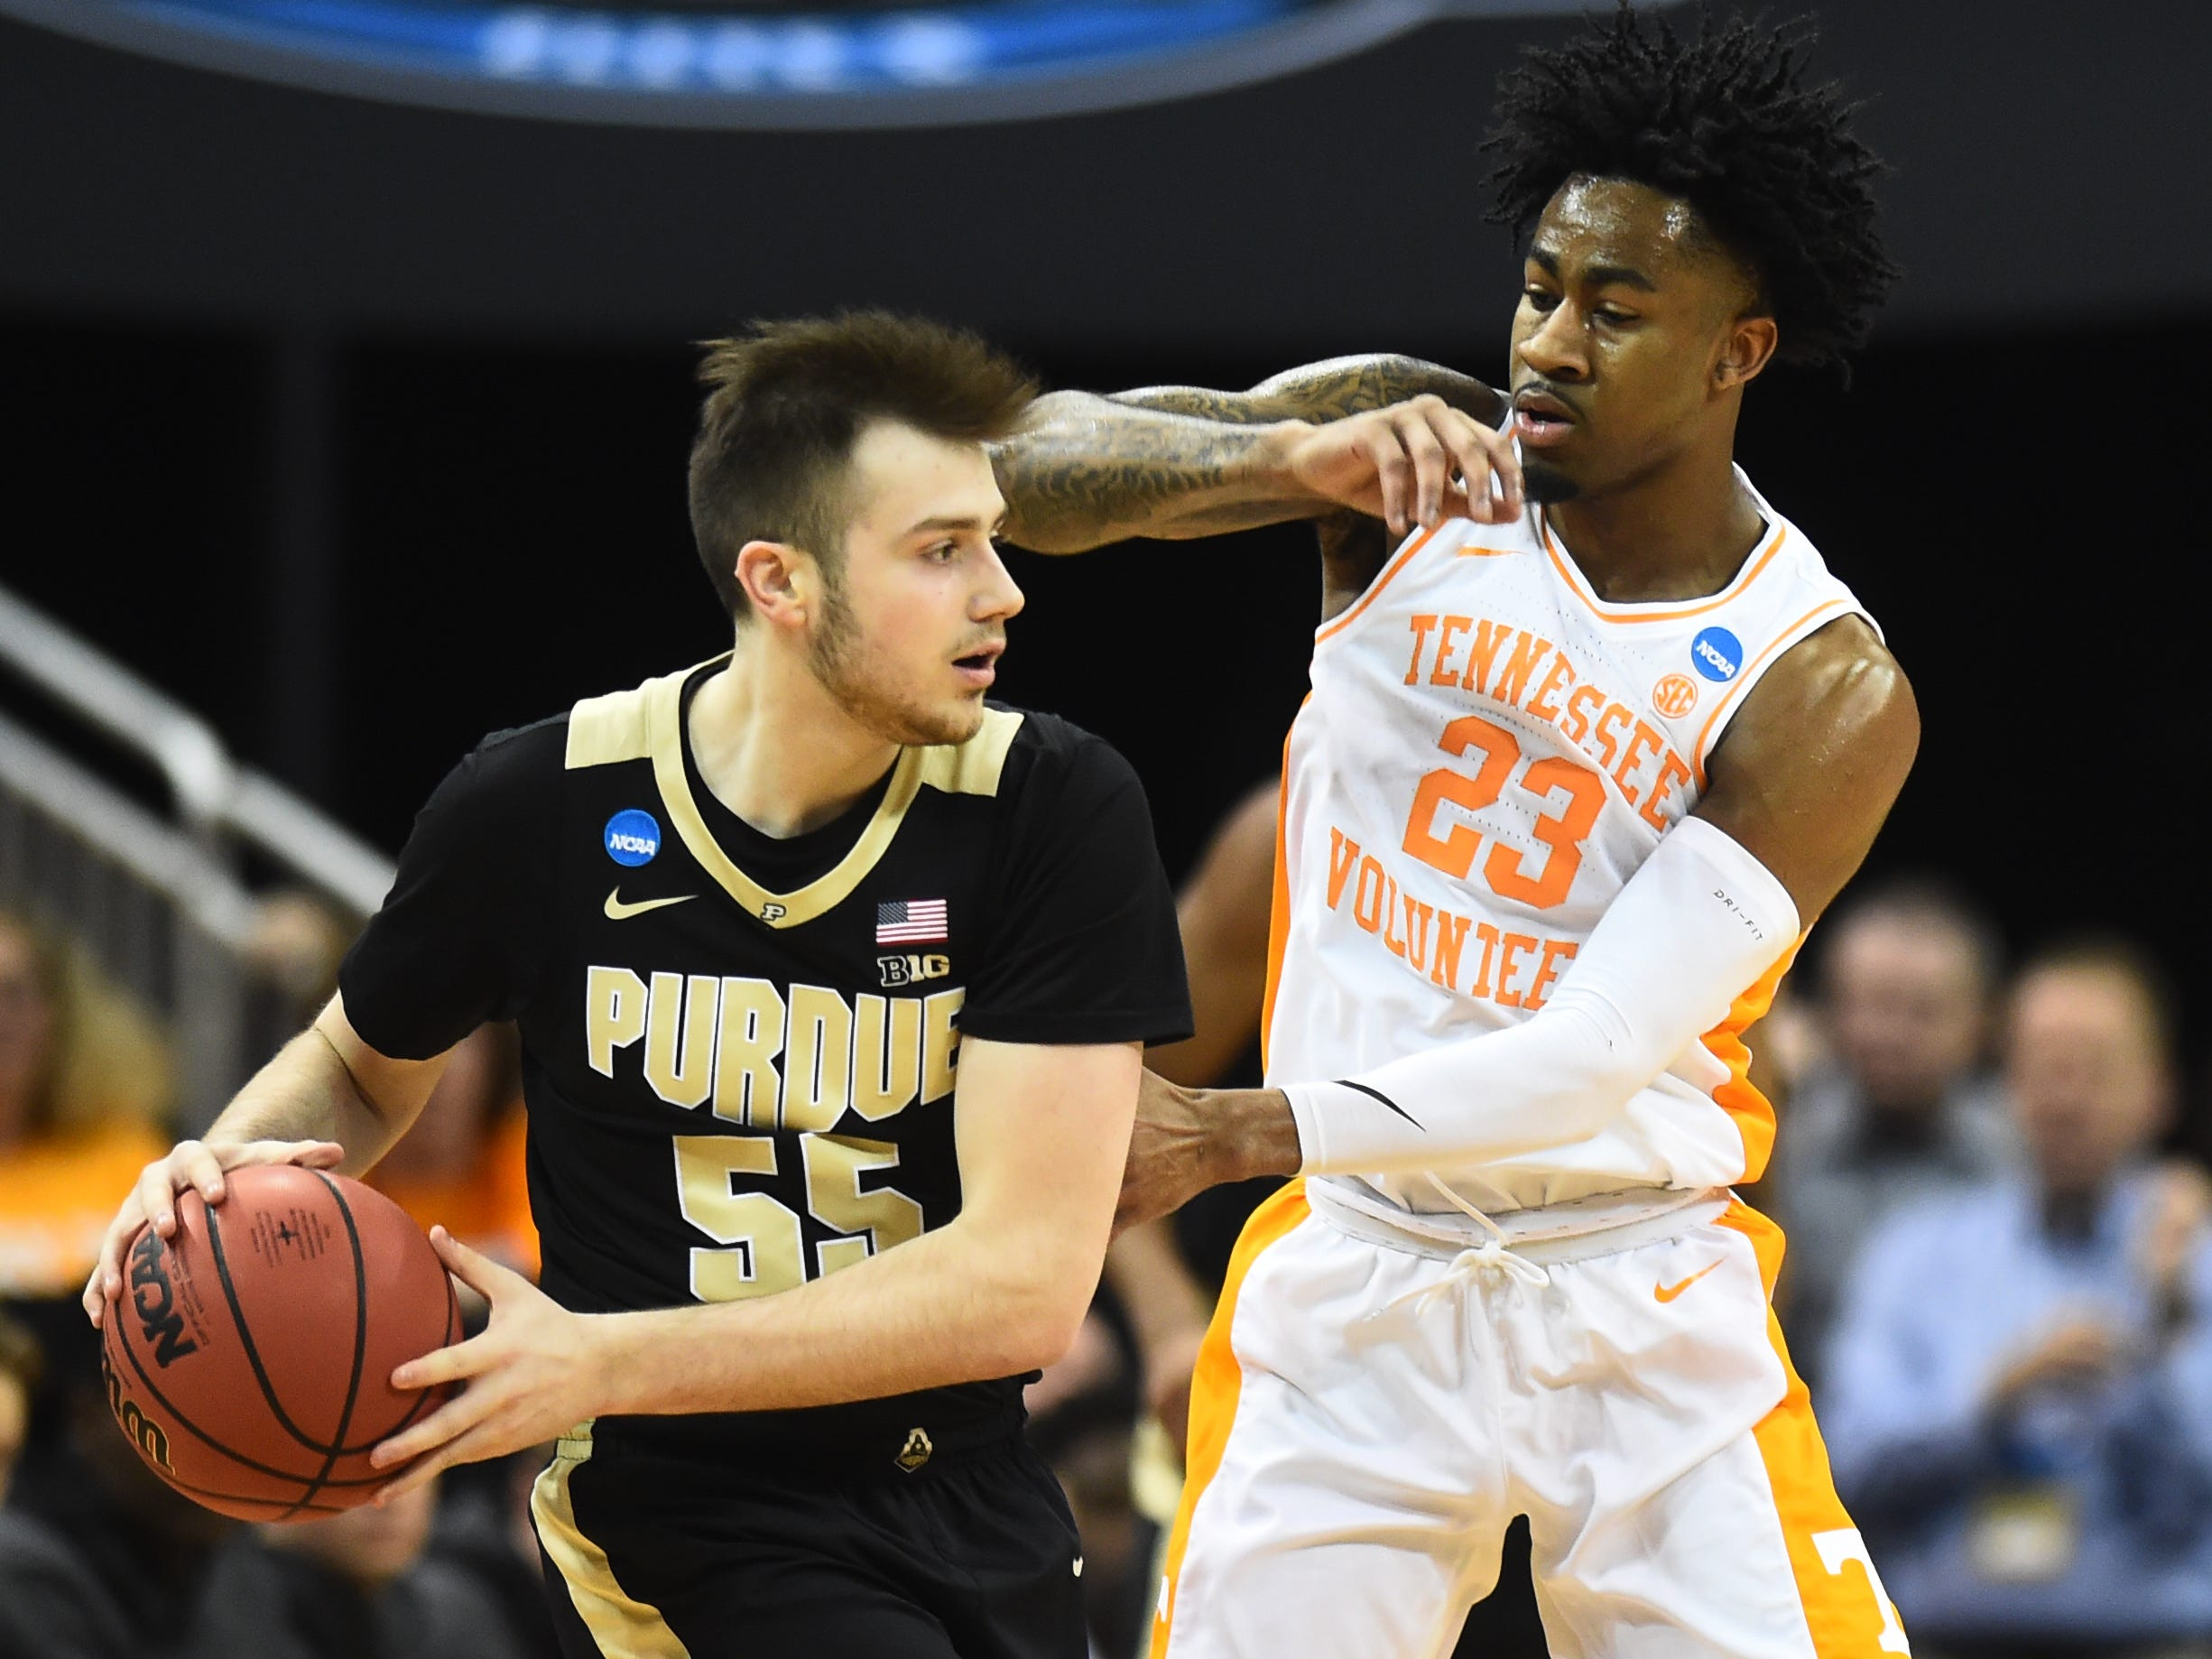 Purdue guard Sasha Stefanovic (55) tries to move the ball defended by Tennessee guard Jordan Bowden (23) in the first half of their Sweet 16 game in the NCAA Tournament Thursday, March 28, 2019, at the KFC Yum! Center in Louisville, Ky.